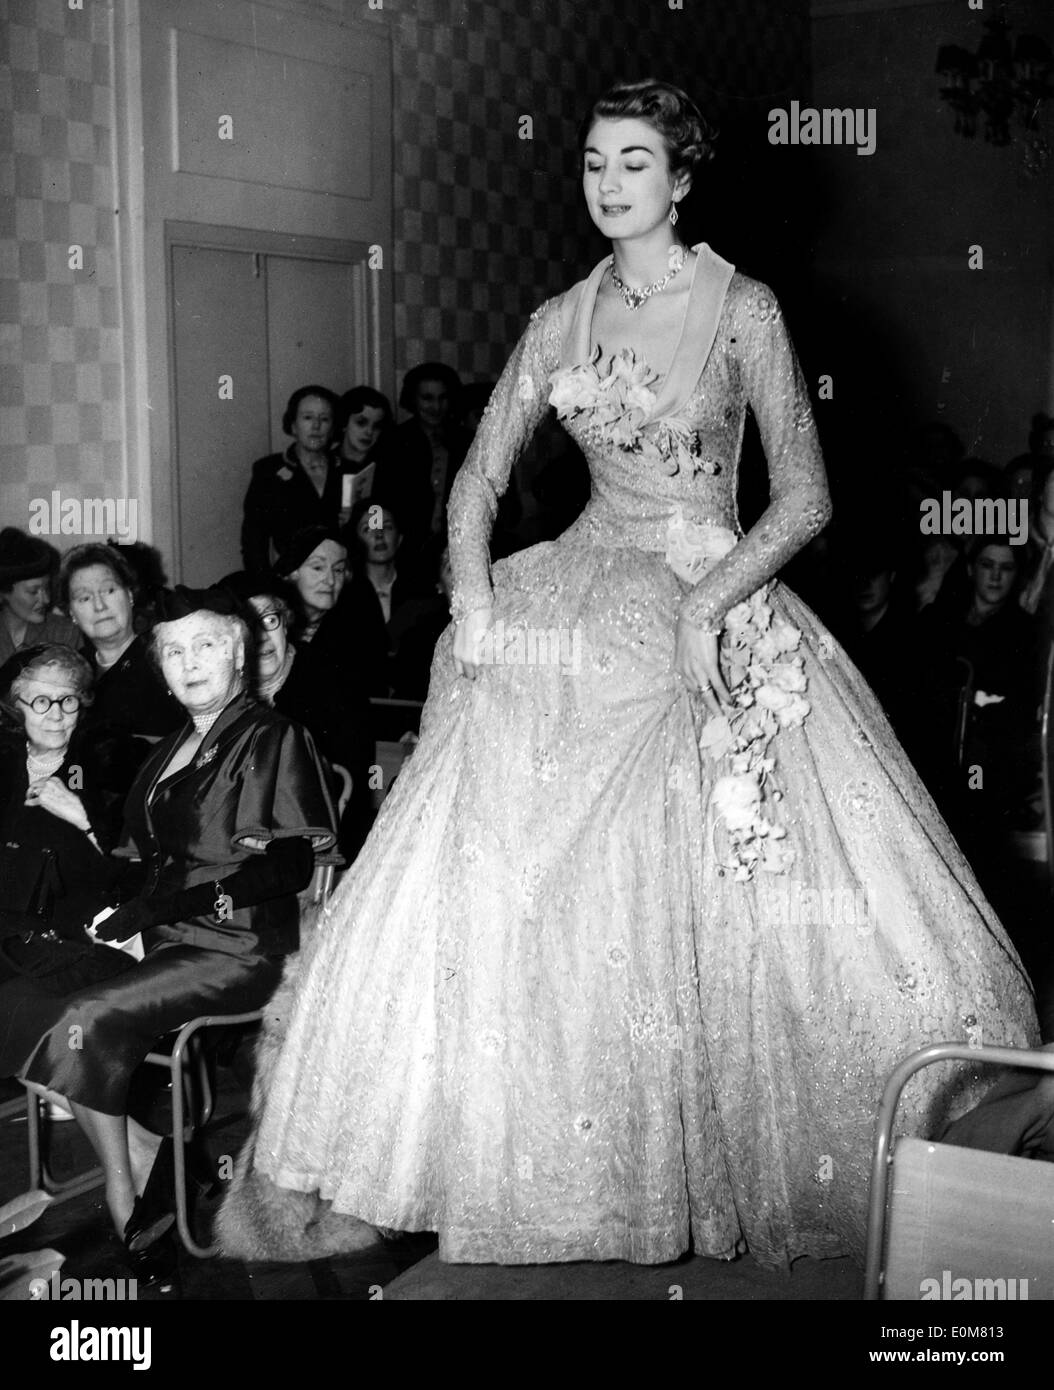 Wedding Photography Athlone: Princess Alice Countess Of Athlone In Fashion Show Stock